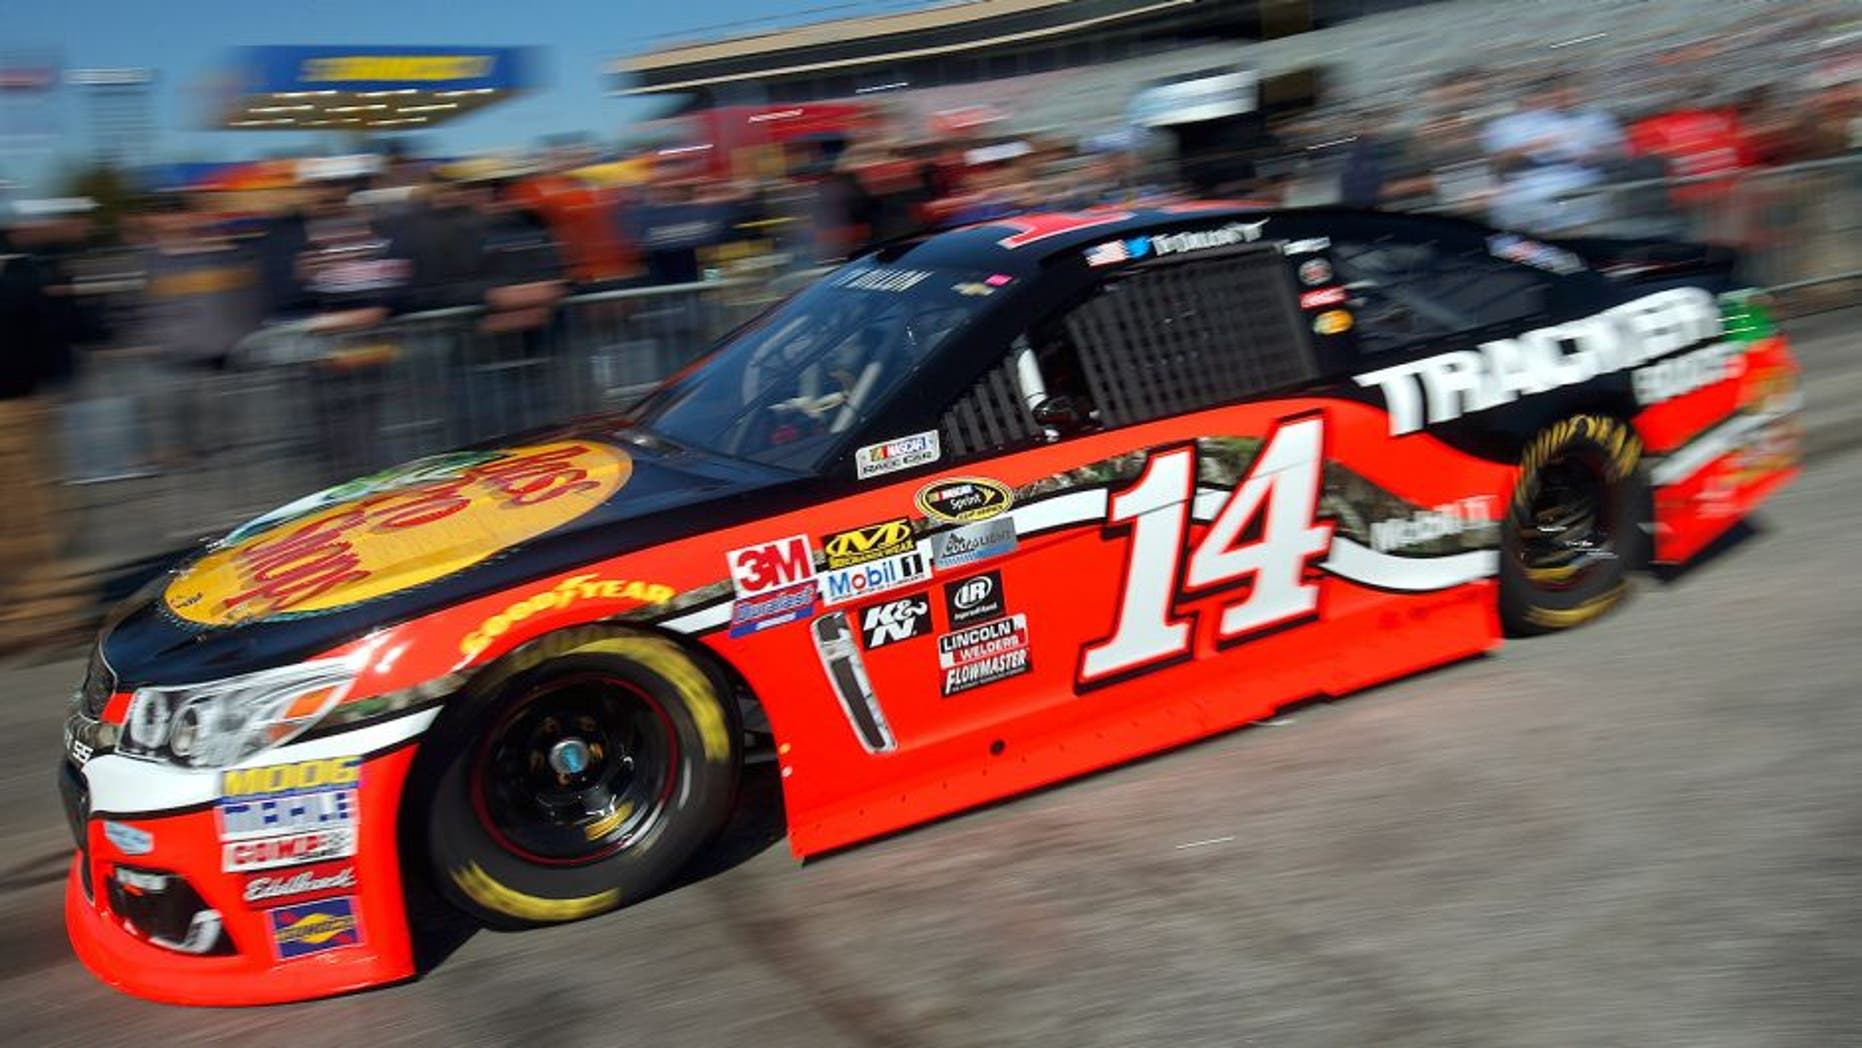 HAMPTON, GA - FEBRUARY 27: Ty Dillon drives the #14 Bass Pro Shops/Tracker Boats Chevrolet through the garage area during practice for the NASCAR Sprint Cup Series Folds of Honor QuikTrip 500 at Atlanta Motor Speedway on February 27, 2016 in Hampton, Georgia. (Photo by Todd Warshaw/NASCAR via Getty Images)